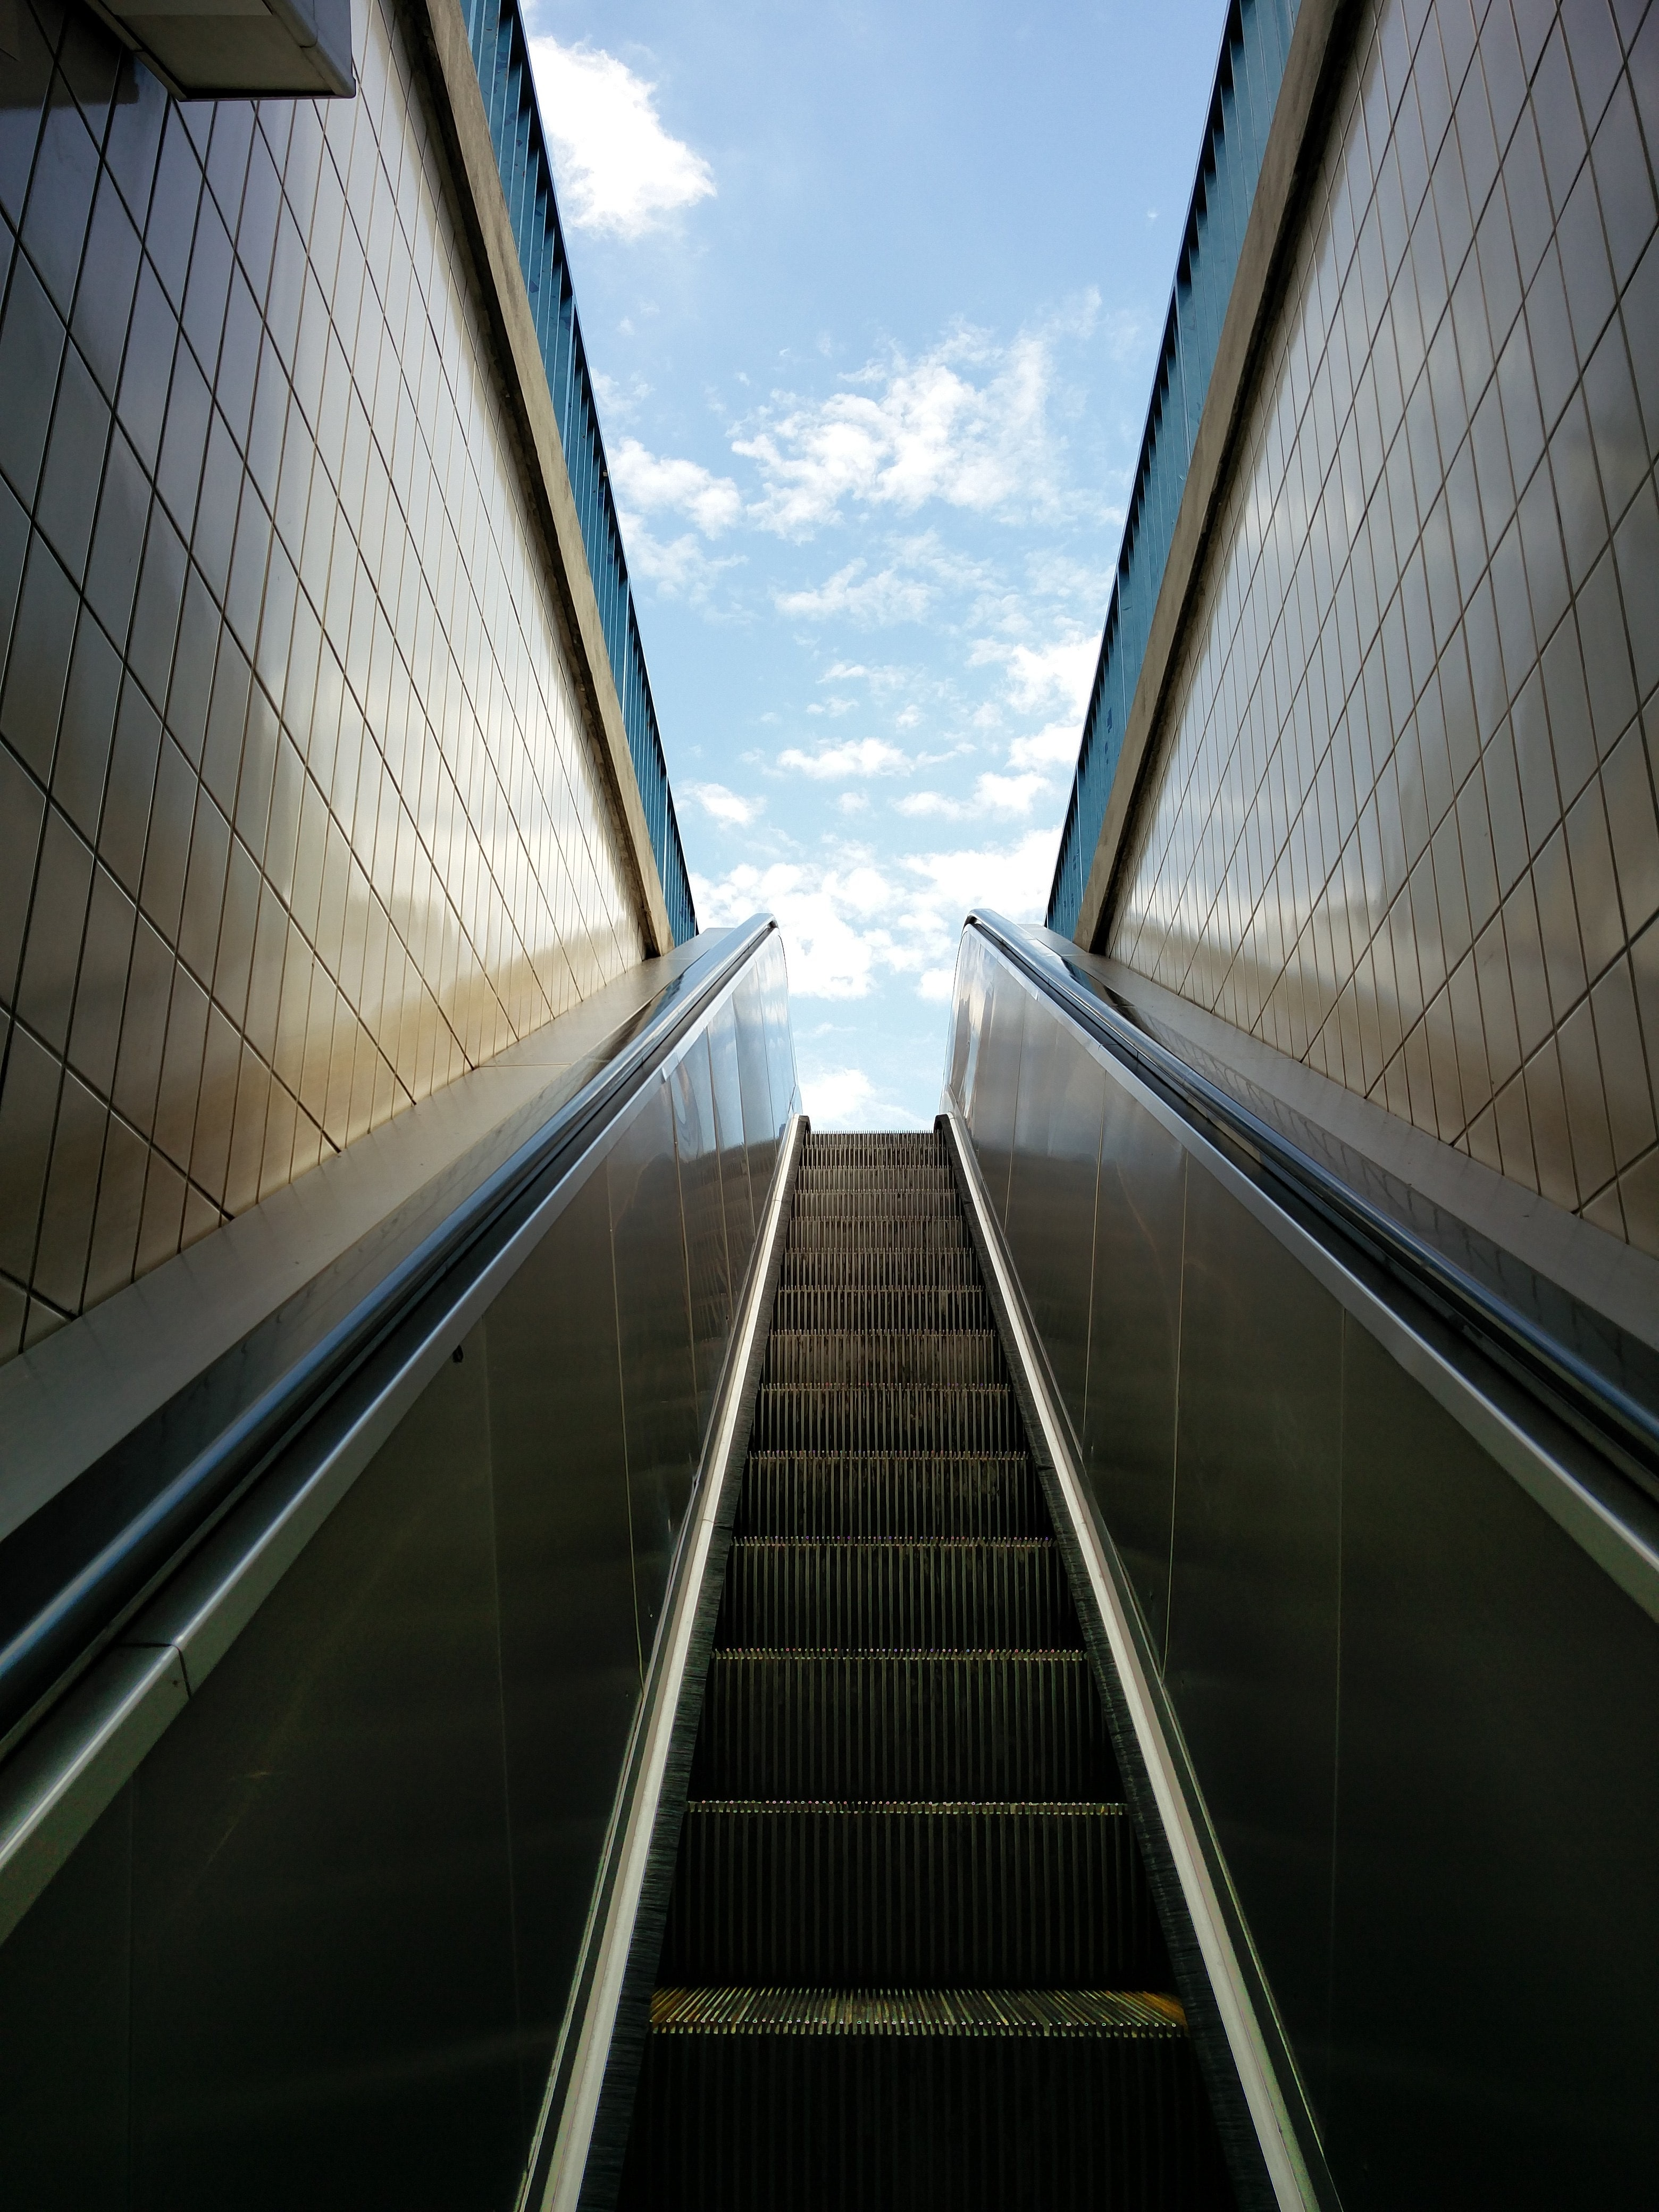 escalator in the middle of tiled walls